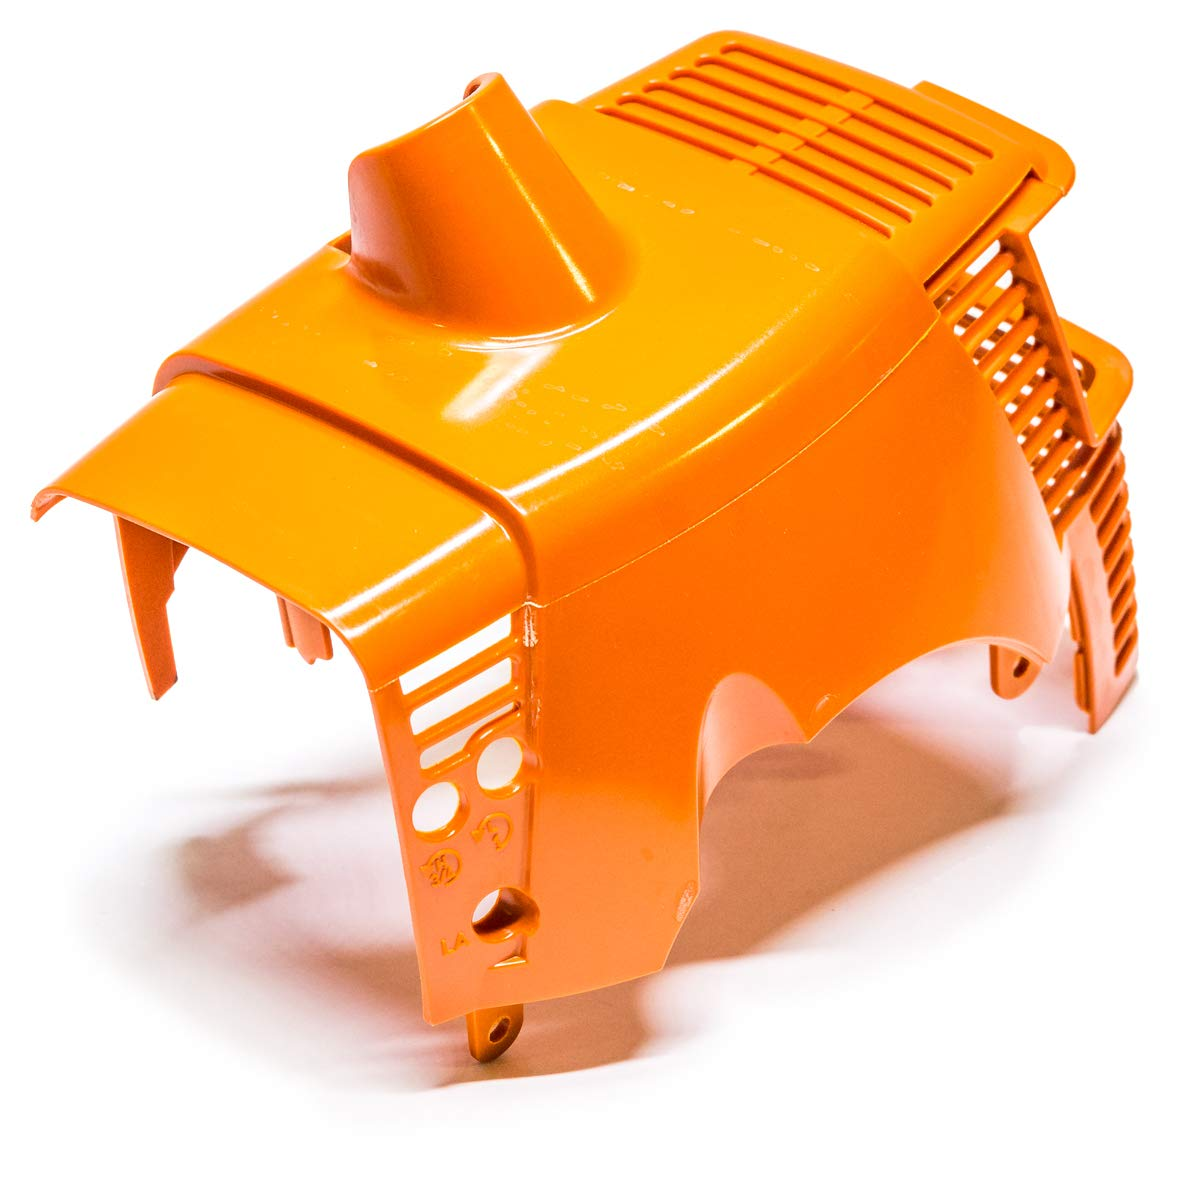 Engine Cover Shroud for Stihl FS120 FS200 FS250 Trimmers 4134 084 0911